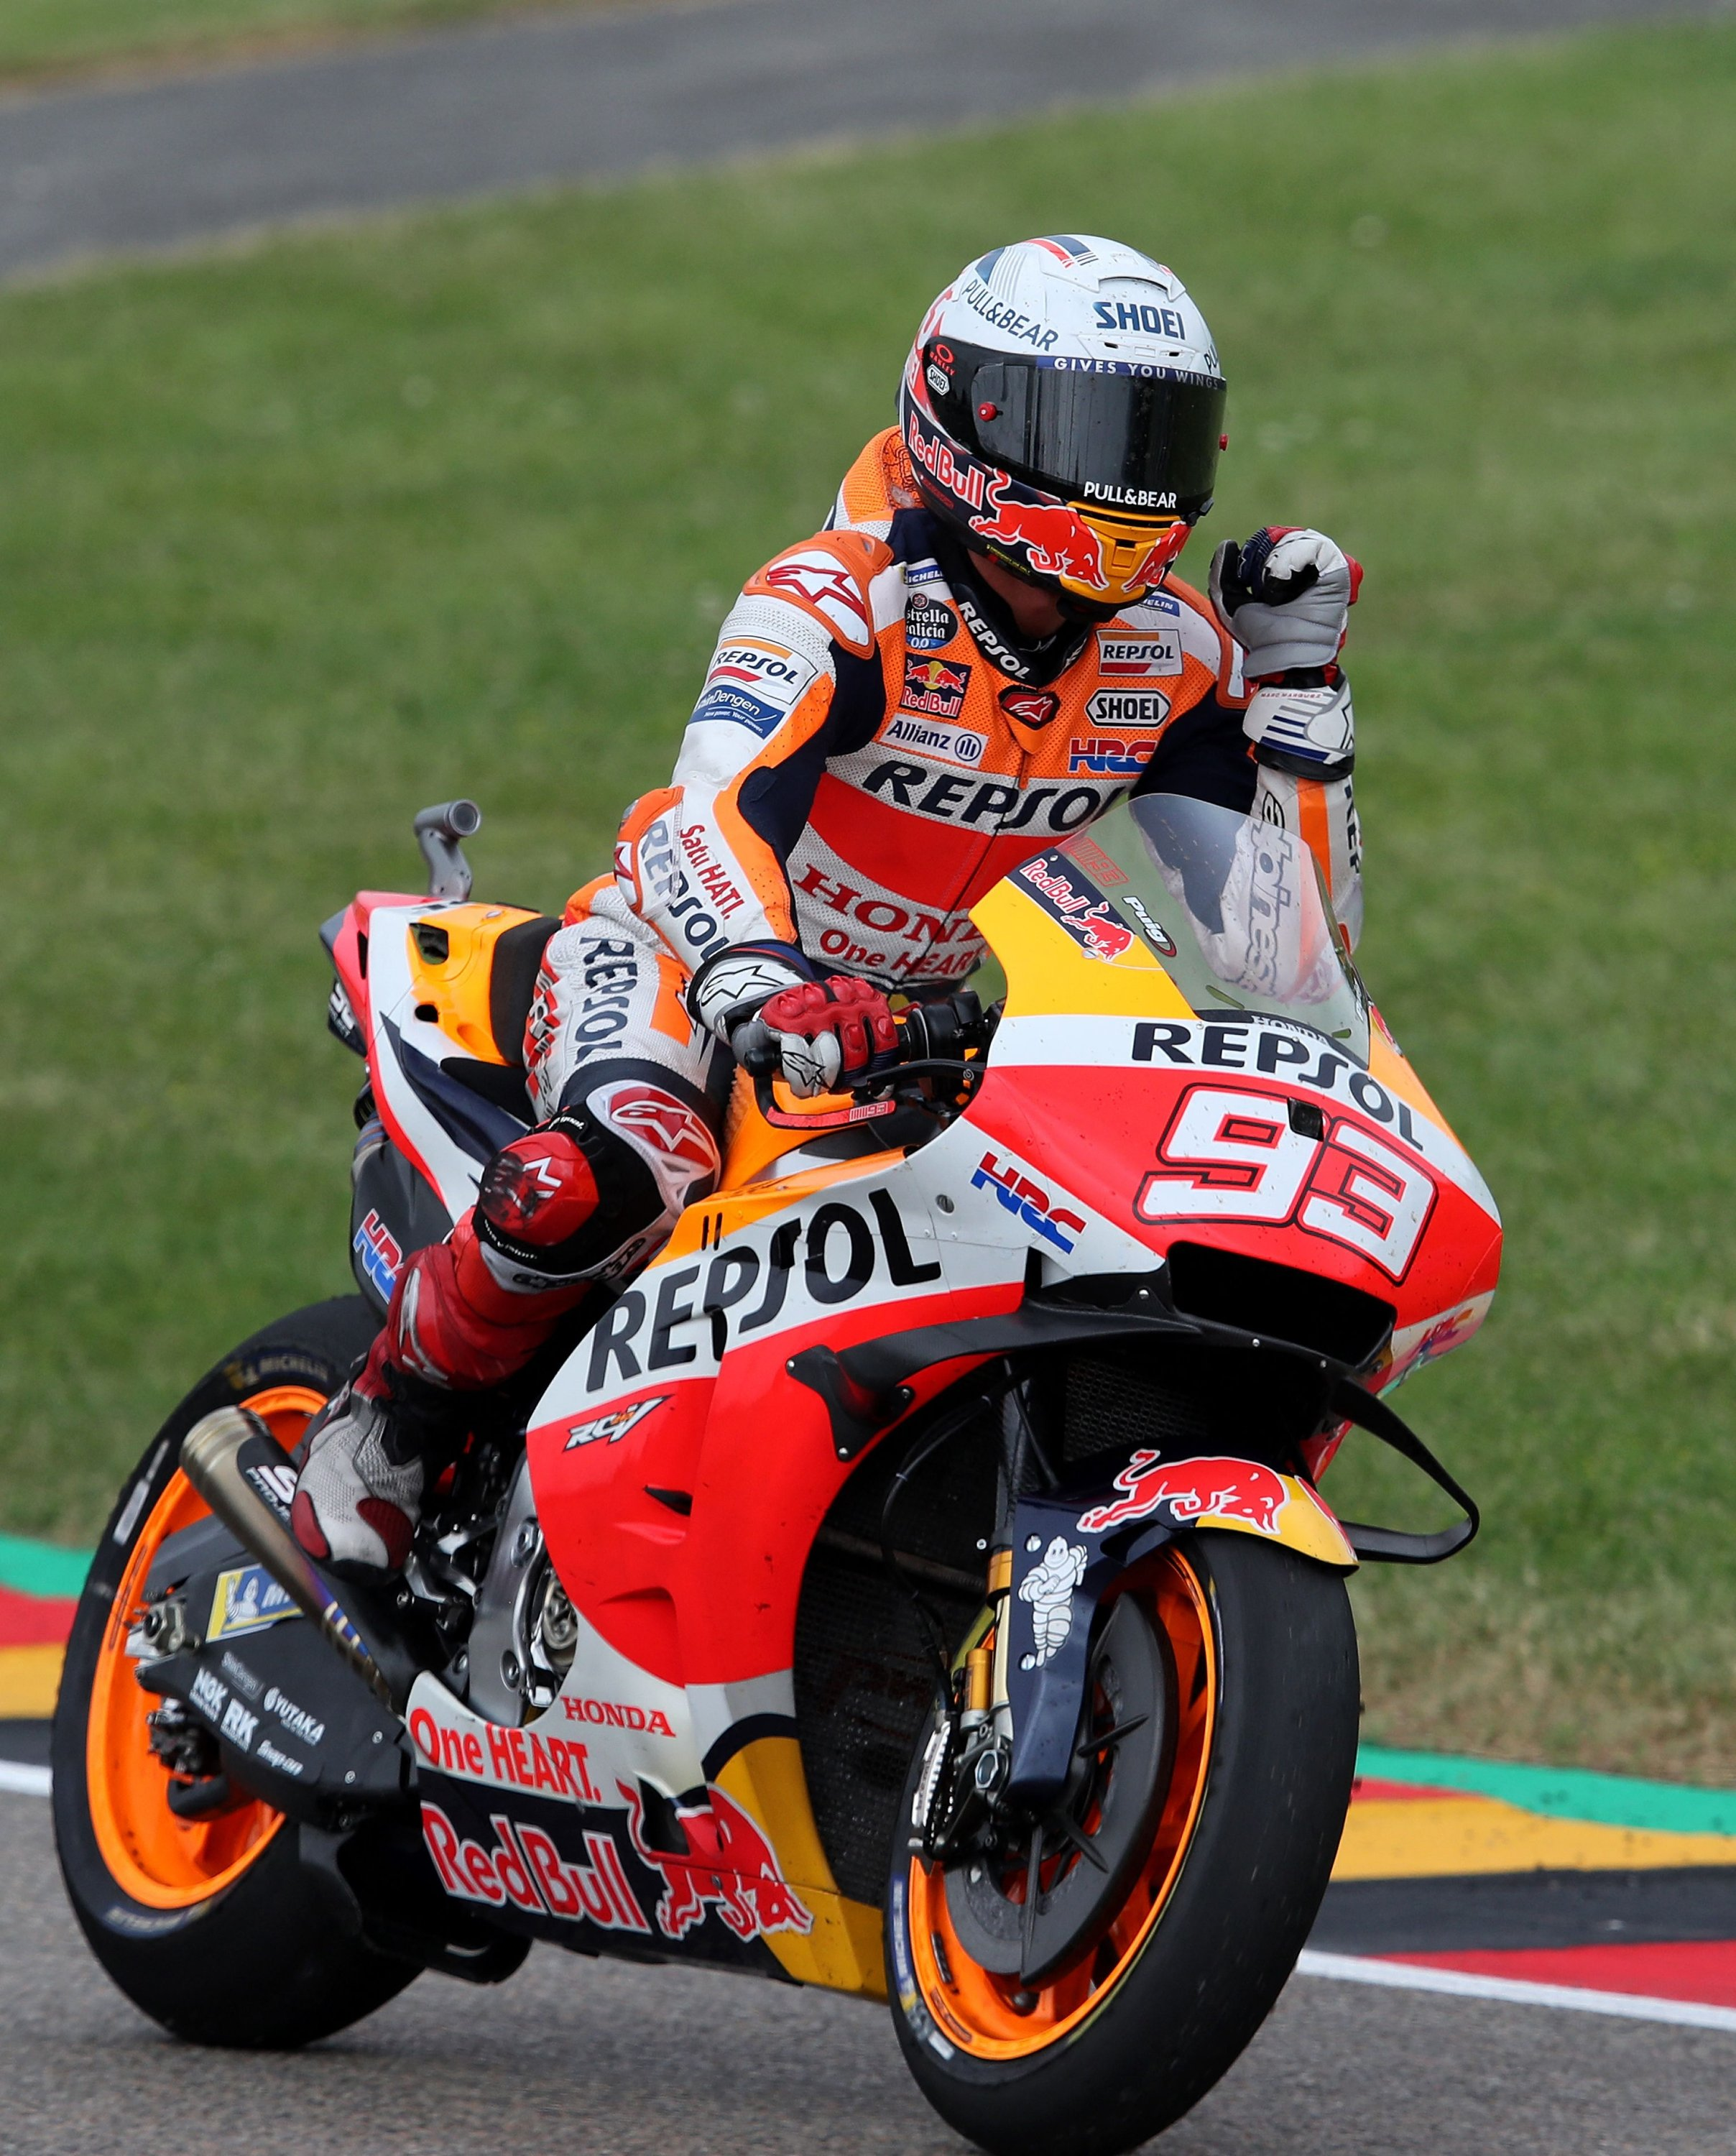 Repsol Honda Team's Spanish MotoGP rider Marc Marquez celebrates winning the Motorcycling Grand Prix of Germany at the Sachsenring racing circuit, Hohenstein-Ernstthal, Germany, June 20, 2021. (AFP Photo)